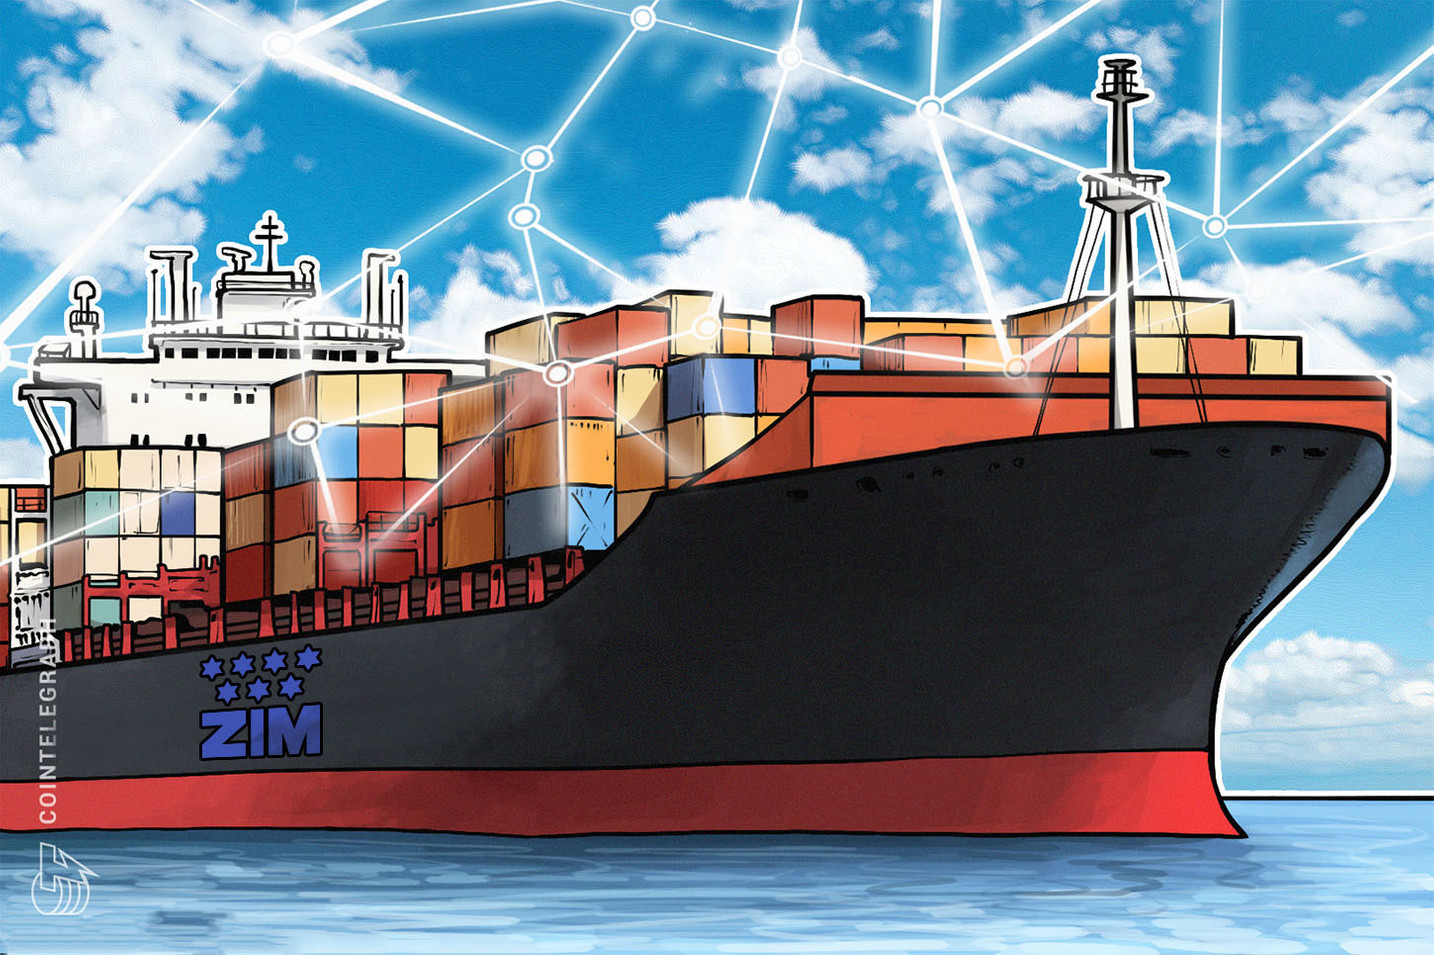 Israel's Top Cargo Shipping Firm Zim Opens Blockchain Platform to All Clients